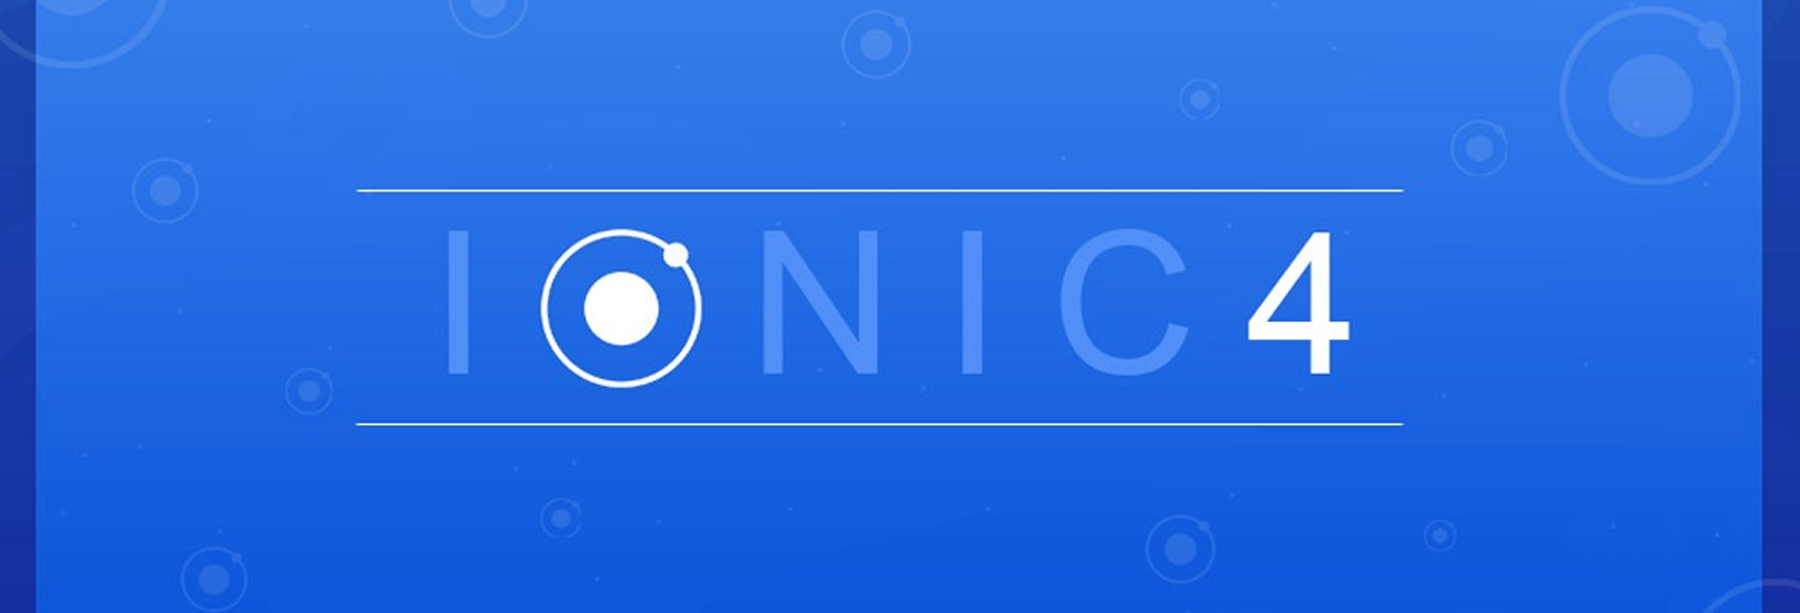 new-features-and-improvements-in-ionic-4